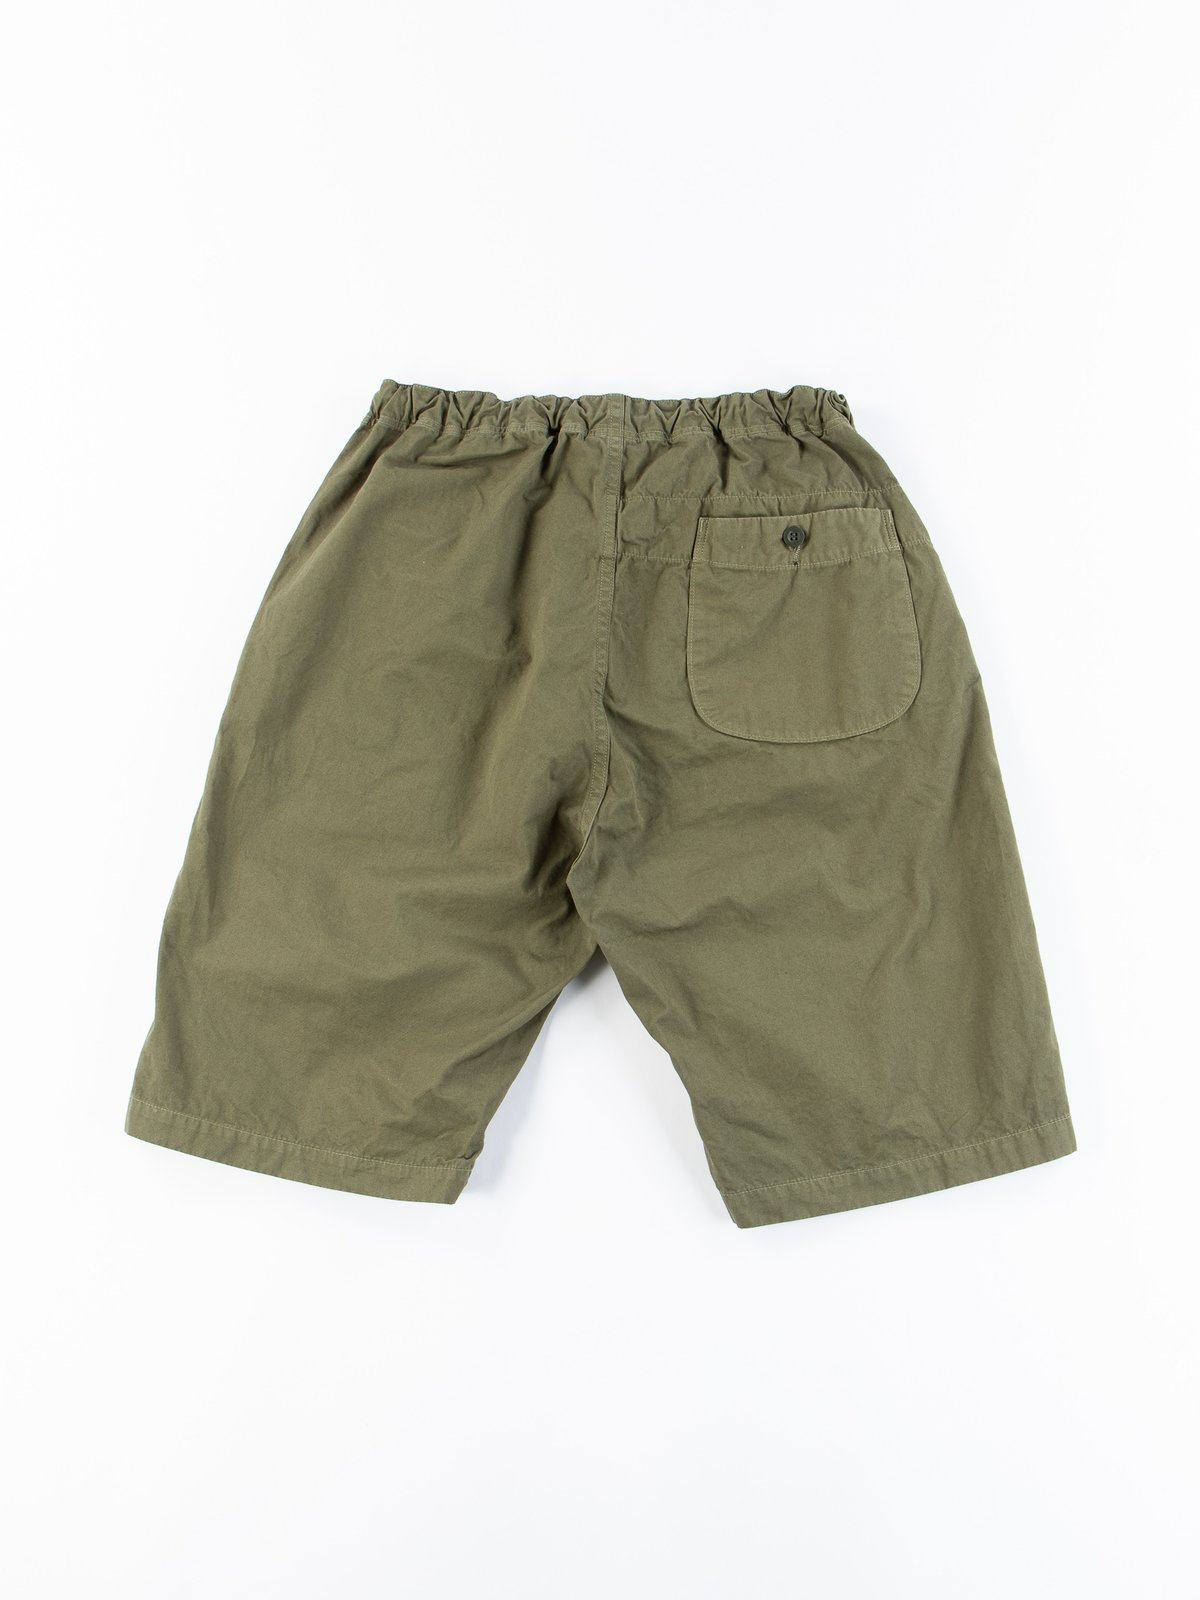 Army Overdyed Poplin TBB Mill Short - Image 5